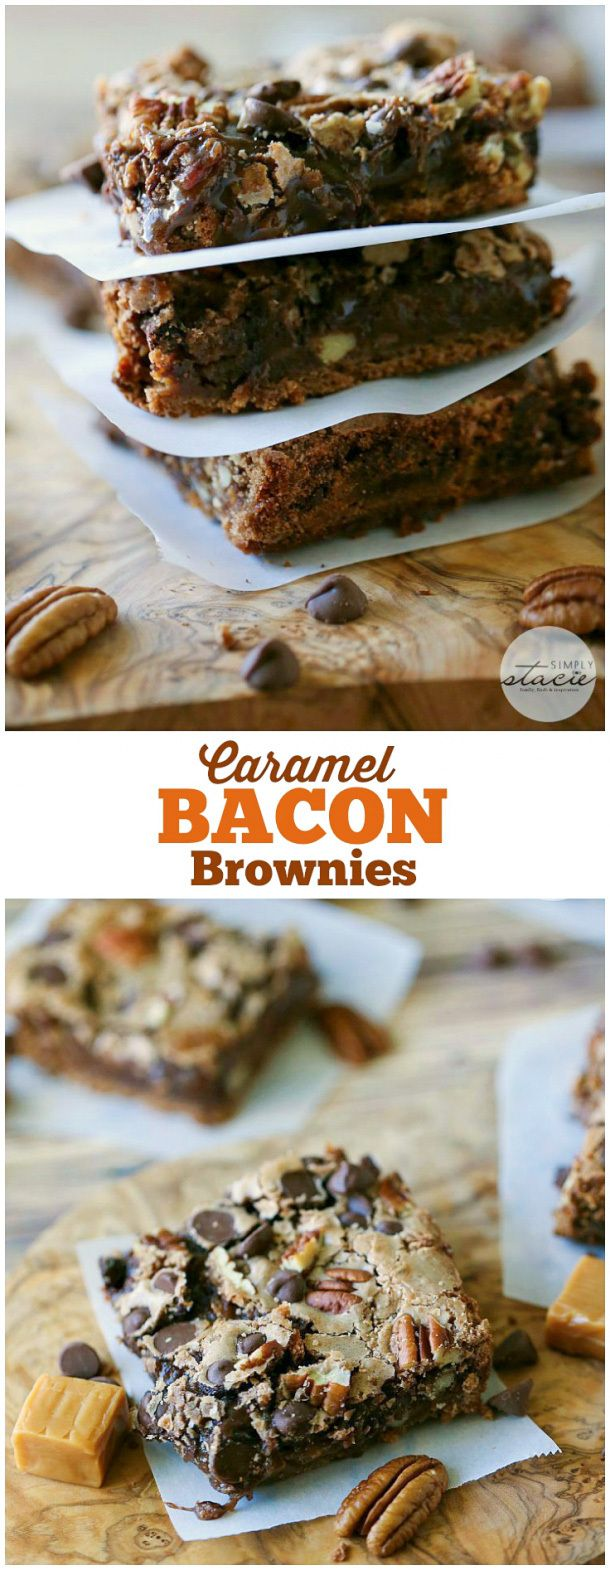 Caramel Bacon Brownies - Bacon for the win in this chocolatey treat! These Caramel Bacon Brownies are rich, sweet and easy to make.